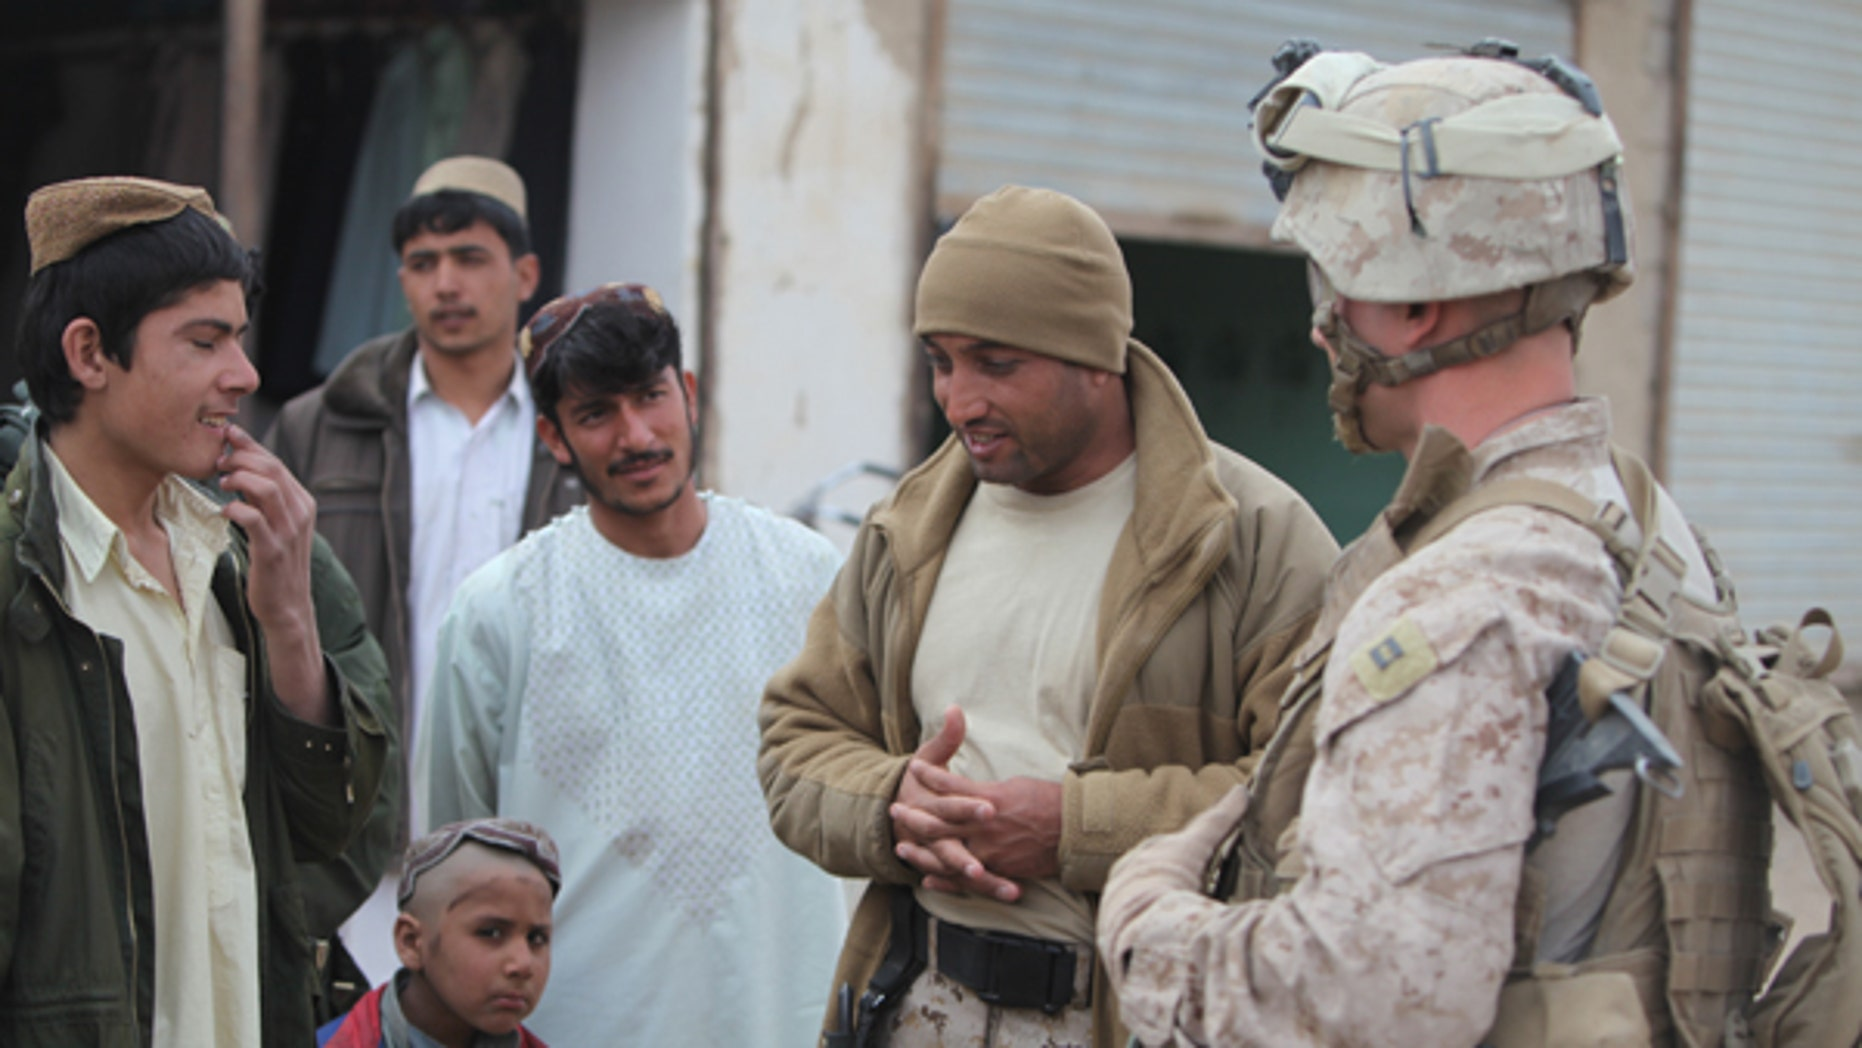 A group of U.S. Marines are fighting for their Afghan interpreter, Zia, pictured second from right, to obtain a Special Immigrant Visa to enter the U.S.